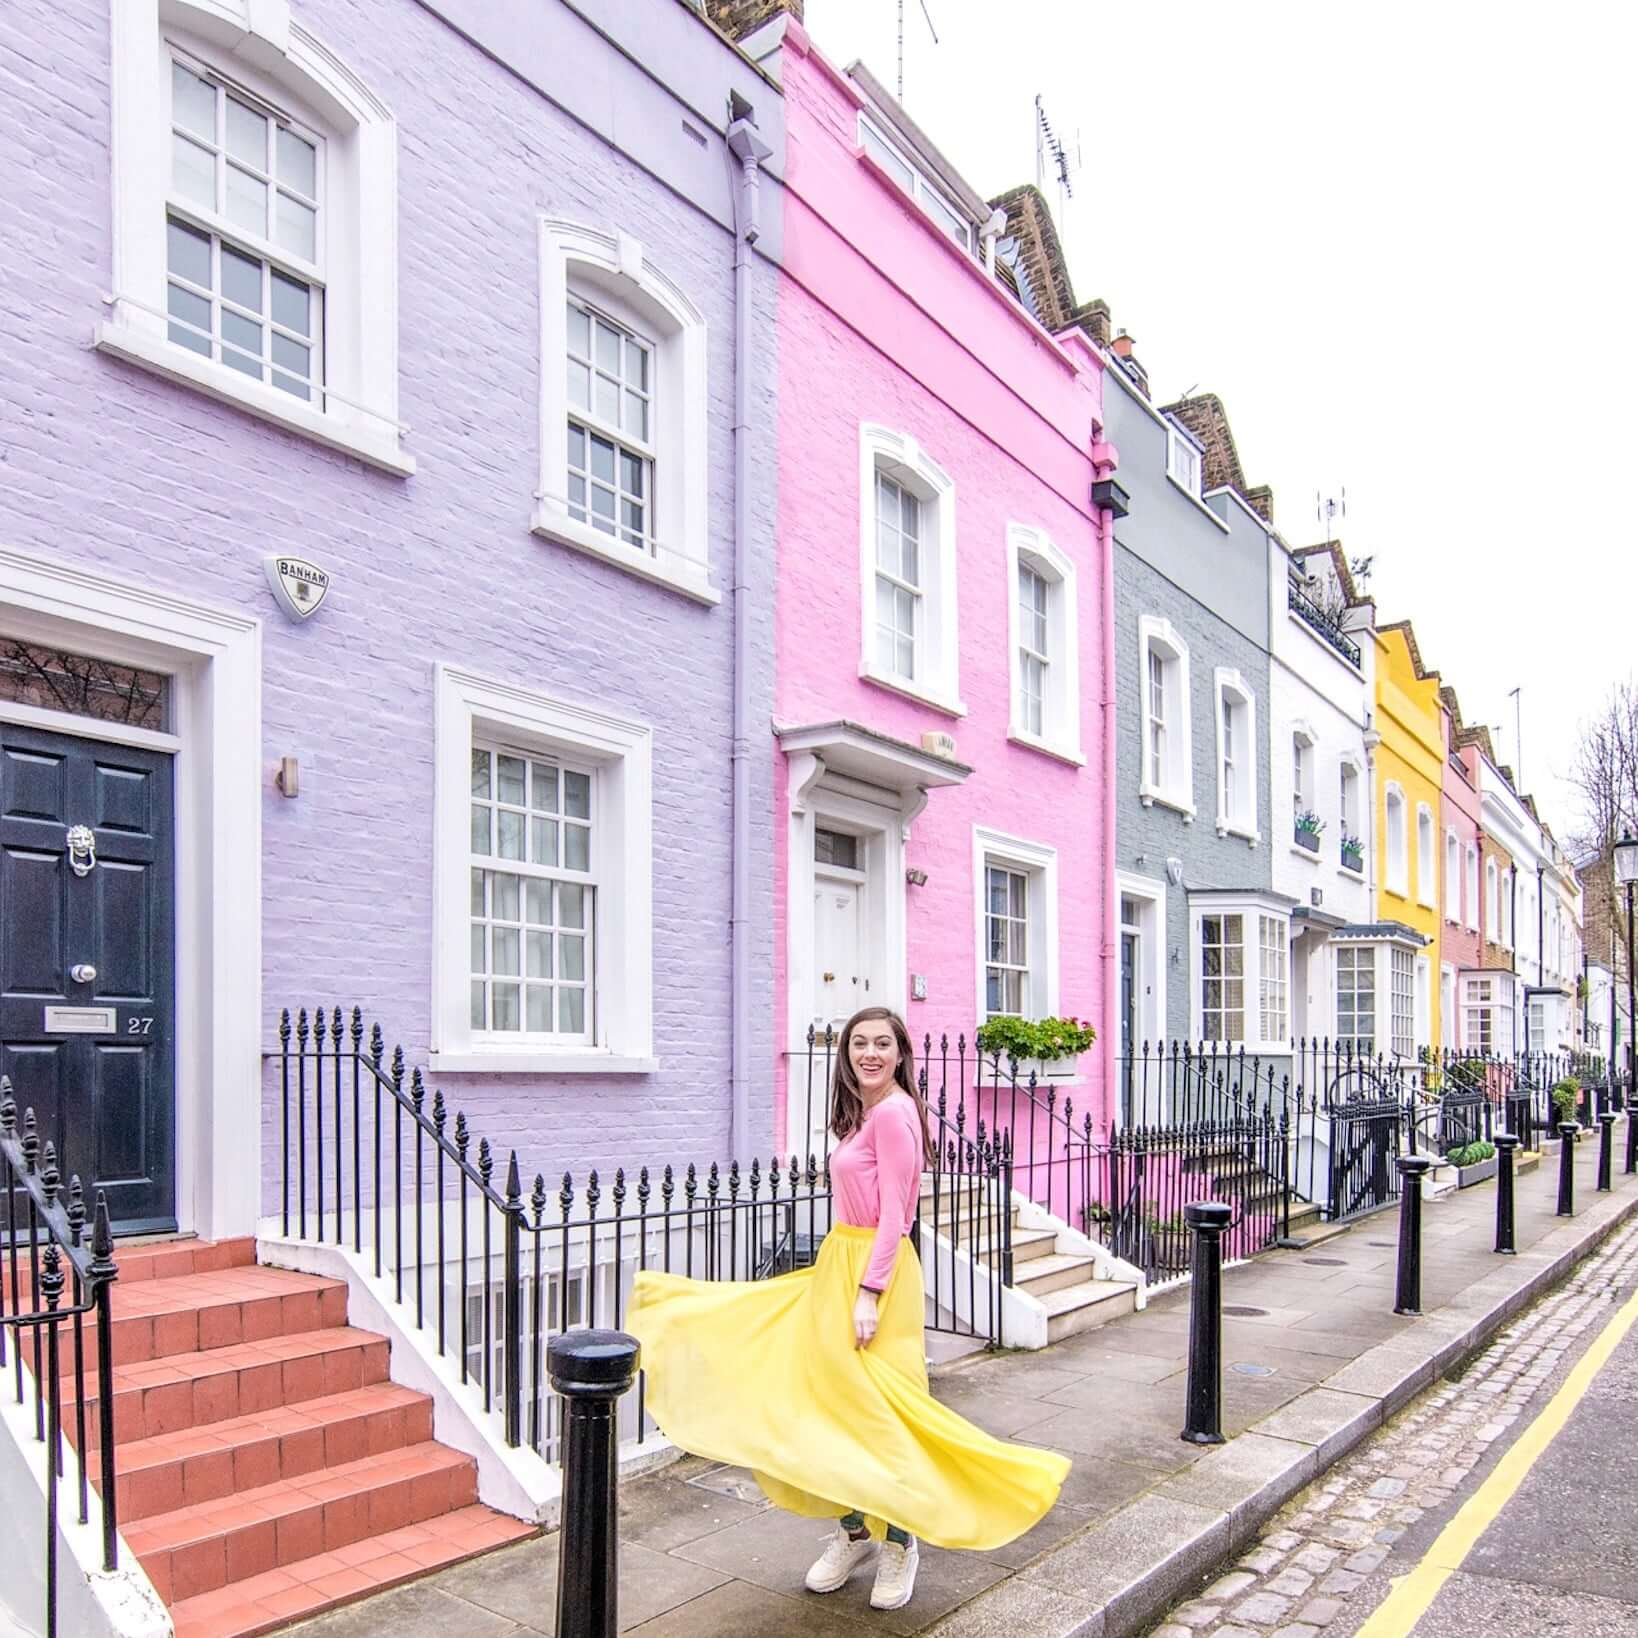 This guide highlights 22 of the most famous London streets, including historic streets as well as the best streets in London for shopping. #visitlondon #europetravel | prettiest places in London | London photography | London travel | London history | Brick Lane | Portobello Road | Abbey Road | Oxford Street | Baker Street | Shaftesbury Avenue | Carnaby Street | Piccadilly Circus | Downing Street | popular streets in London